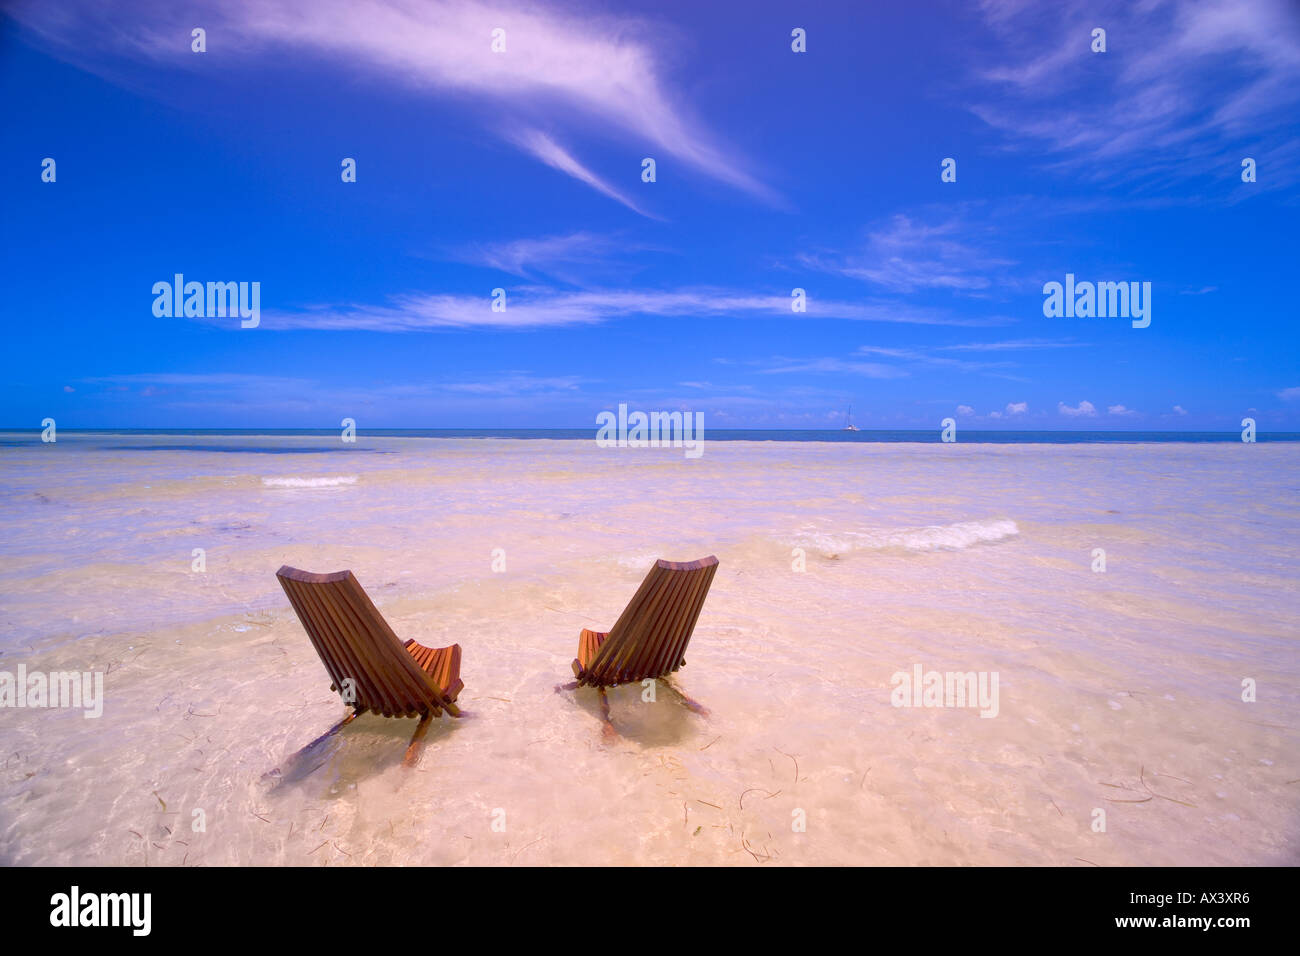 Two Beach Chairs In Shallow Water In Key West, Florida, USA